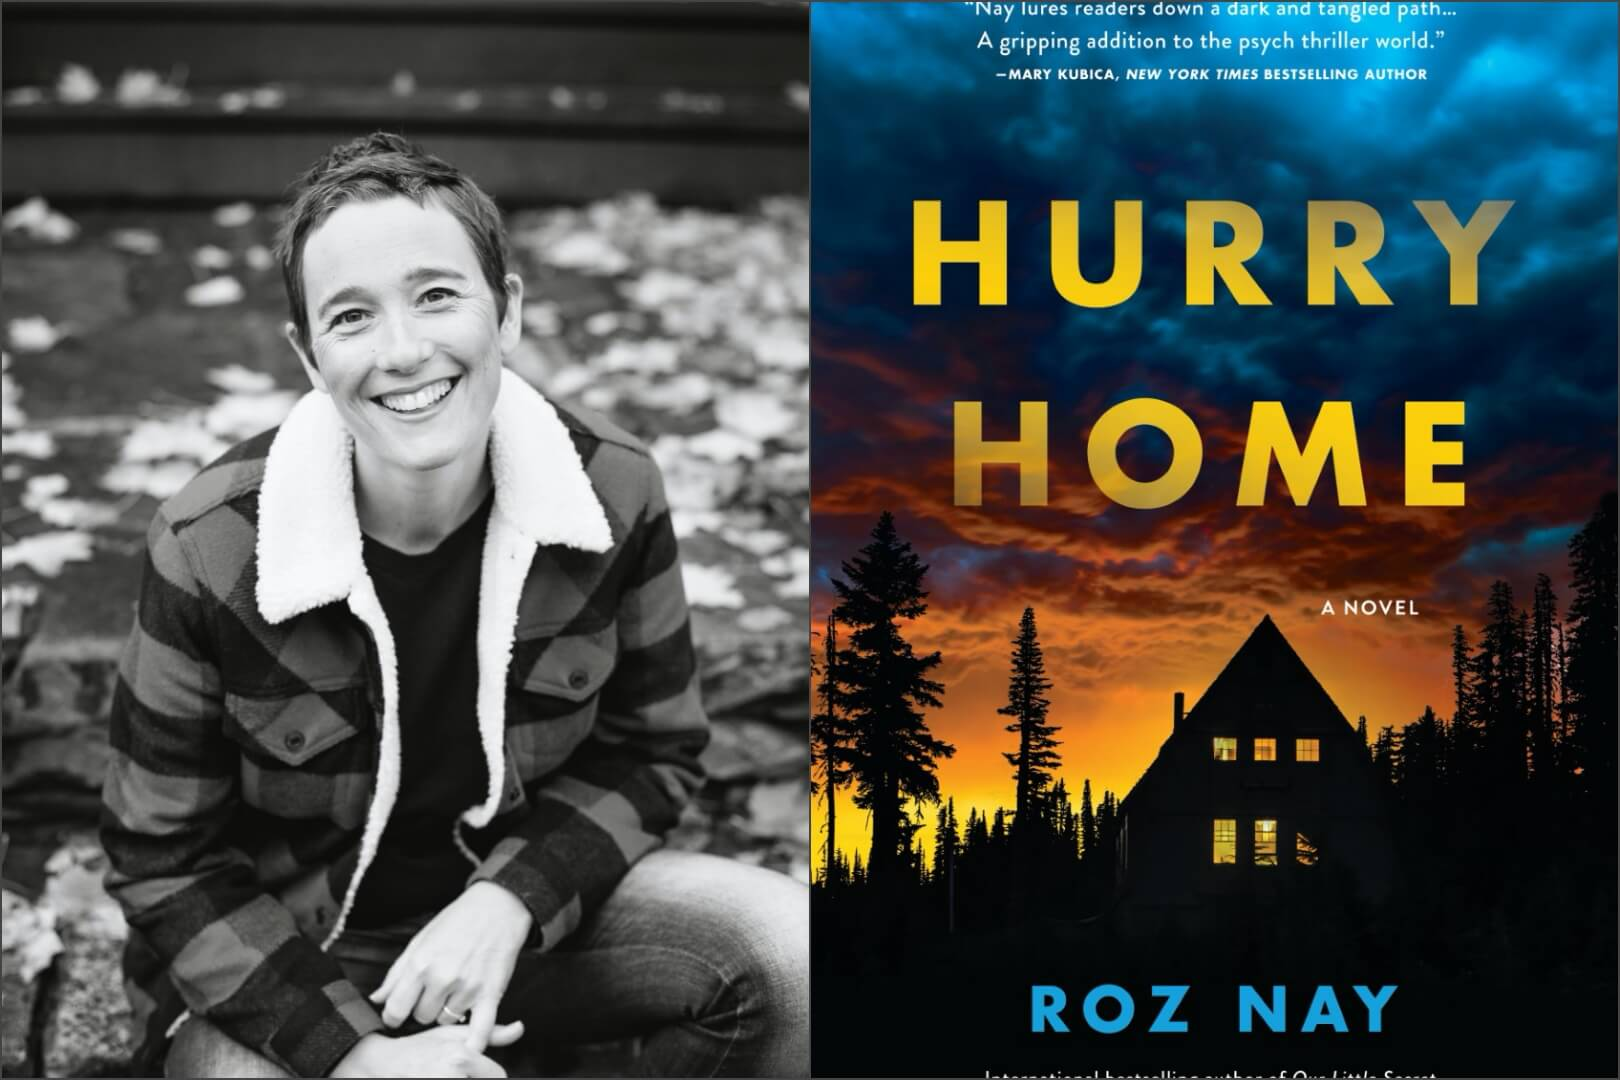 roz nay - interview - book club chat